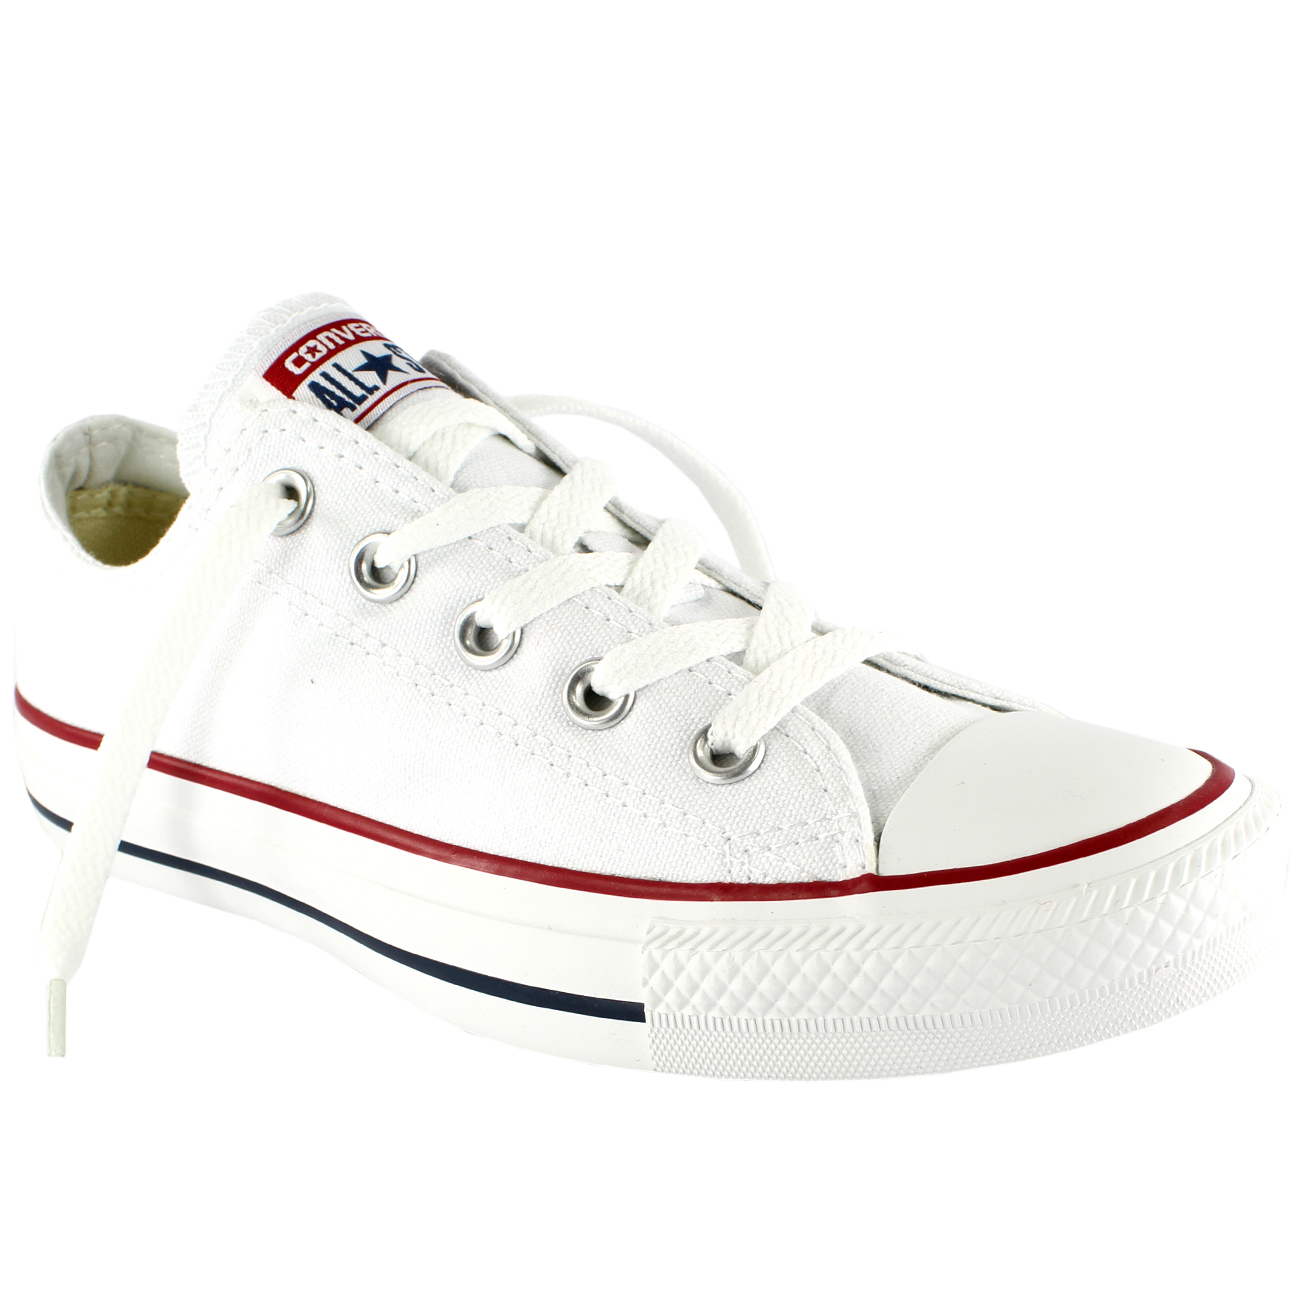 0b423b600acd93 Mens Converse All Star Ox Low Chuck Taylor Chucks Sneakers New US ...